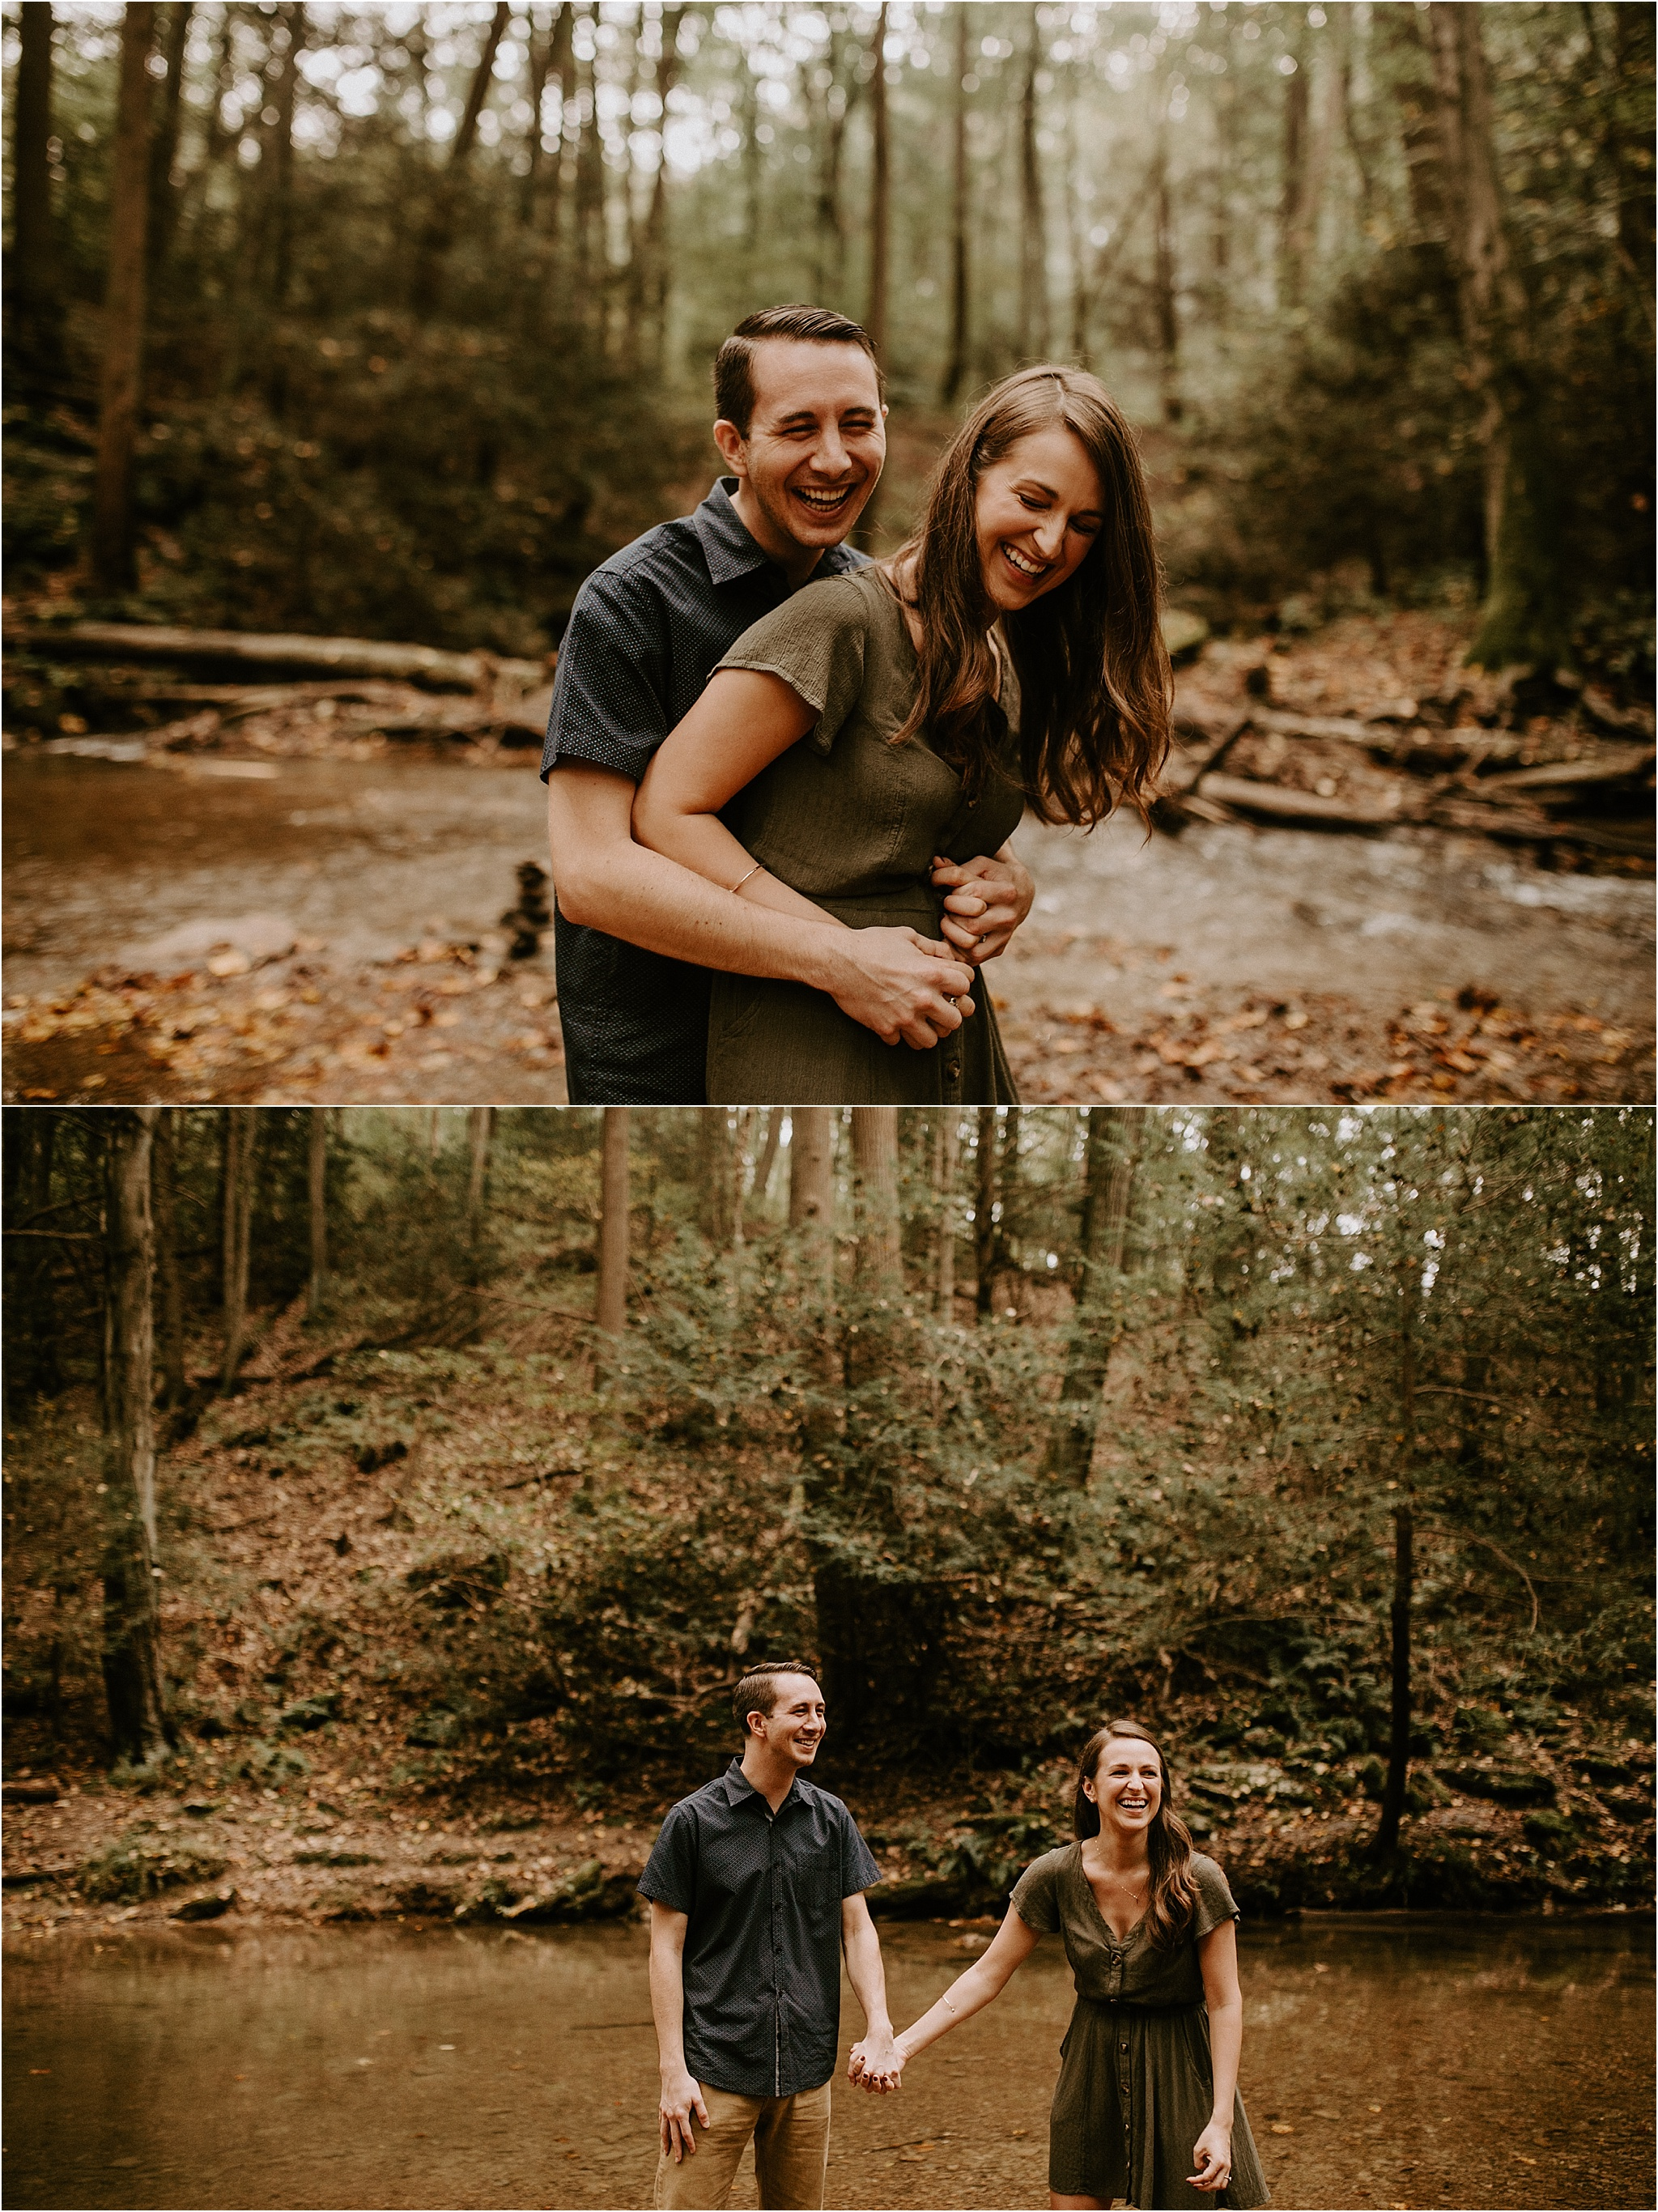 Sarah_Brookhart_Lancaster_PA_Engagement_Photographer_0005.jpg